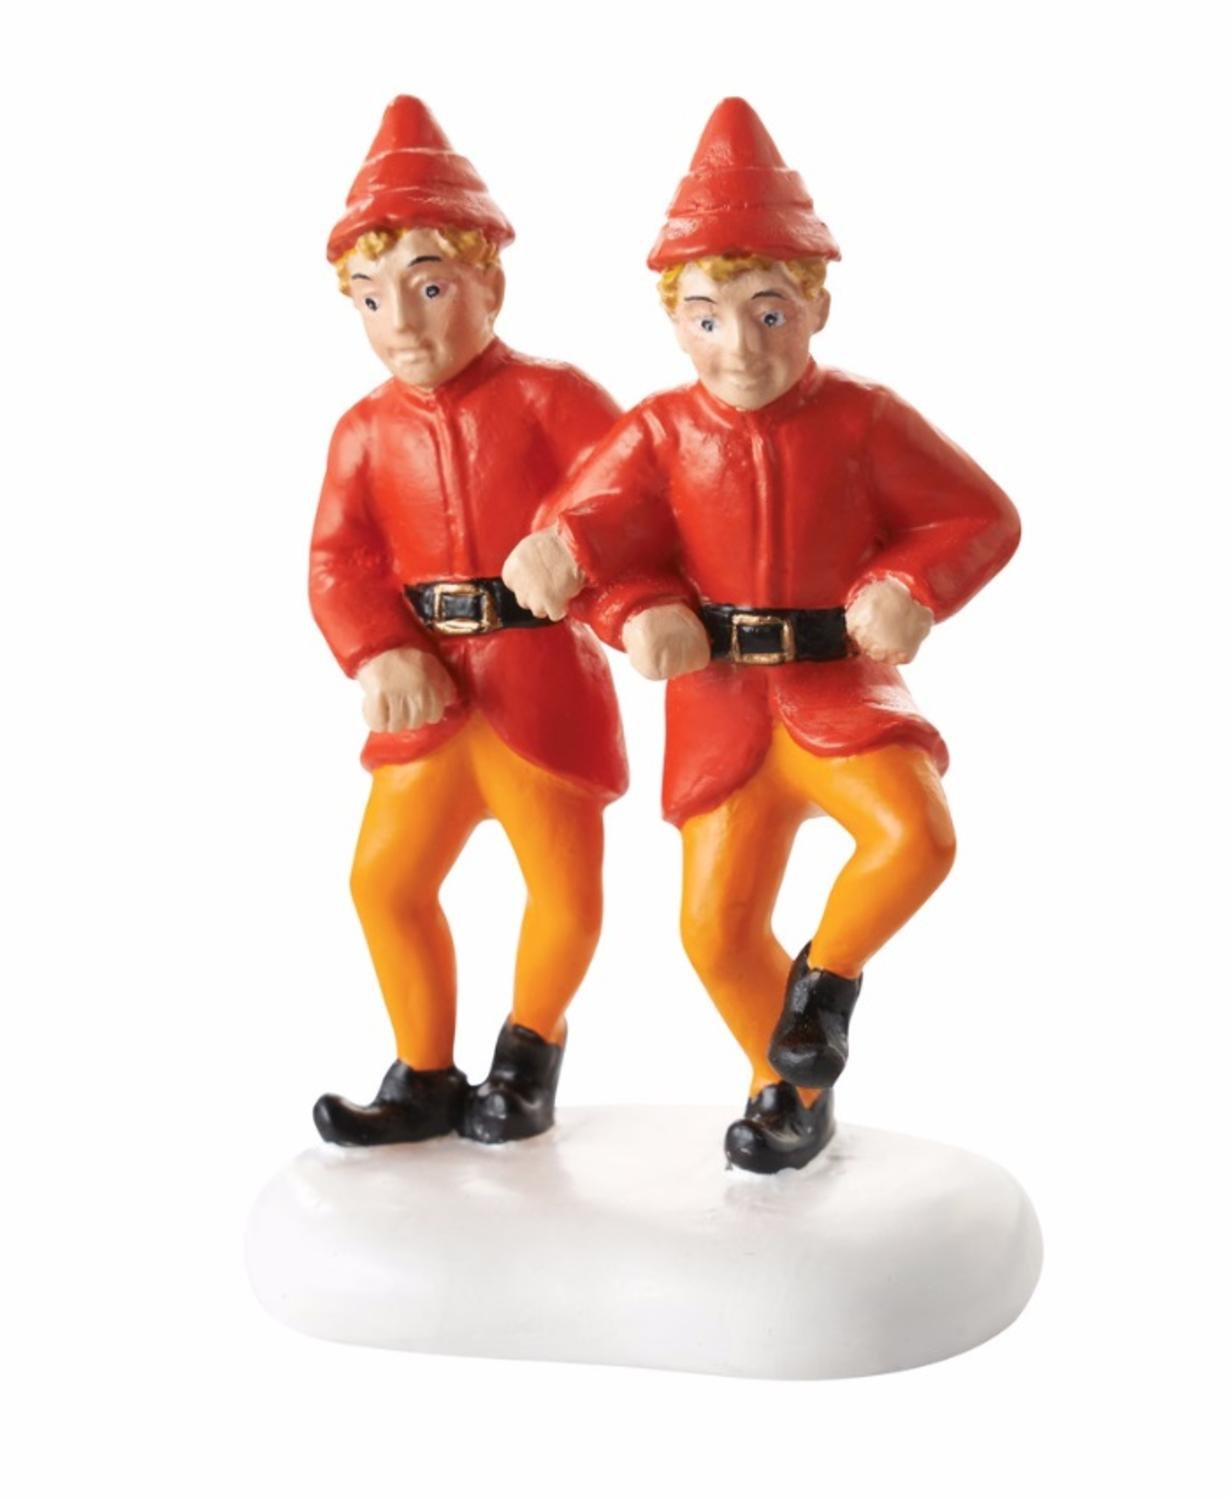 Department 56 Elf The Movie The Twins' Happy Dance Christmas Figurine #4053061